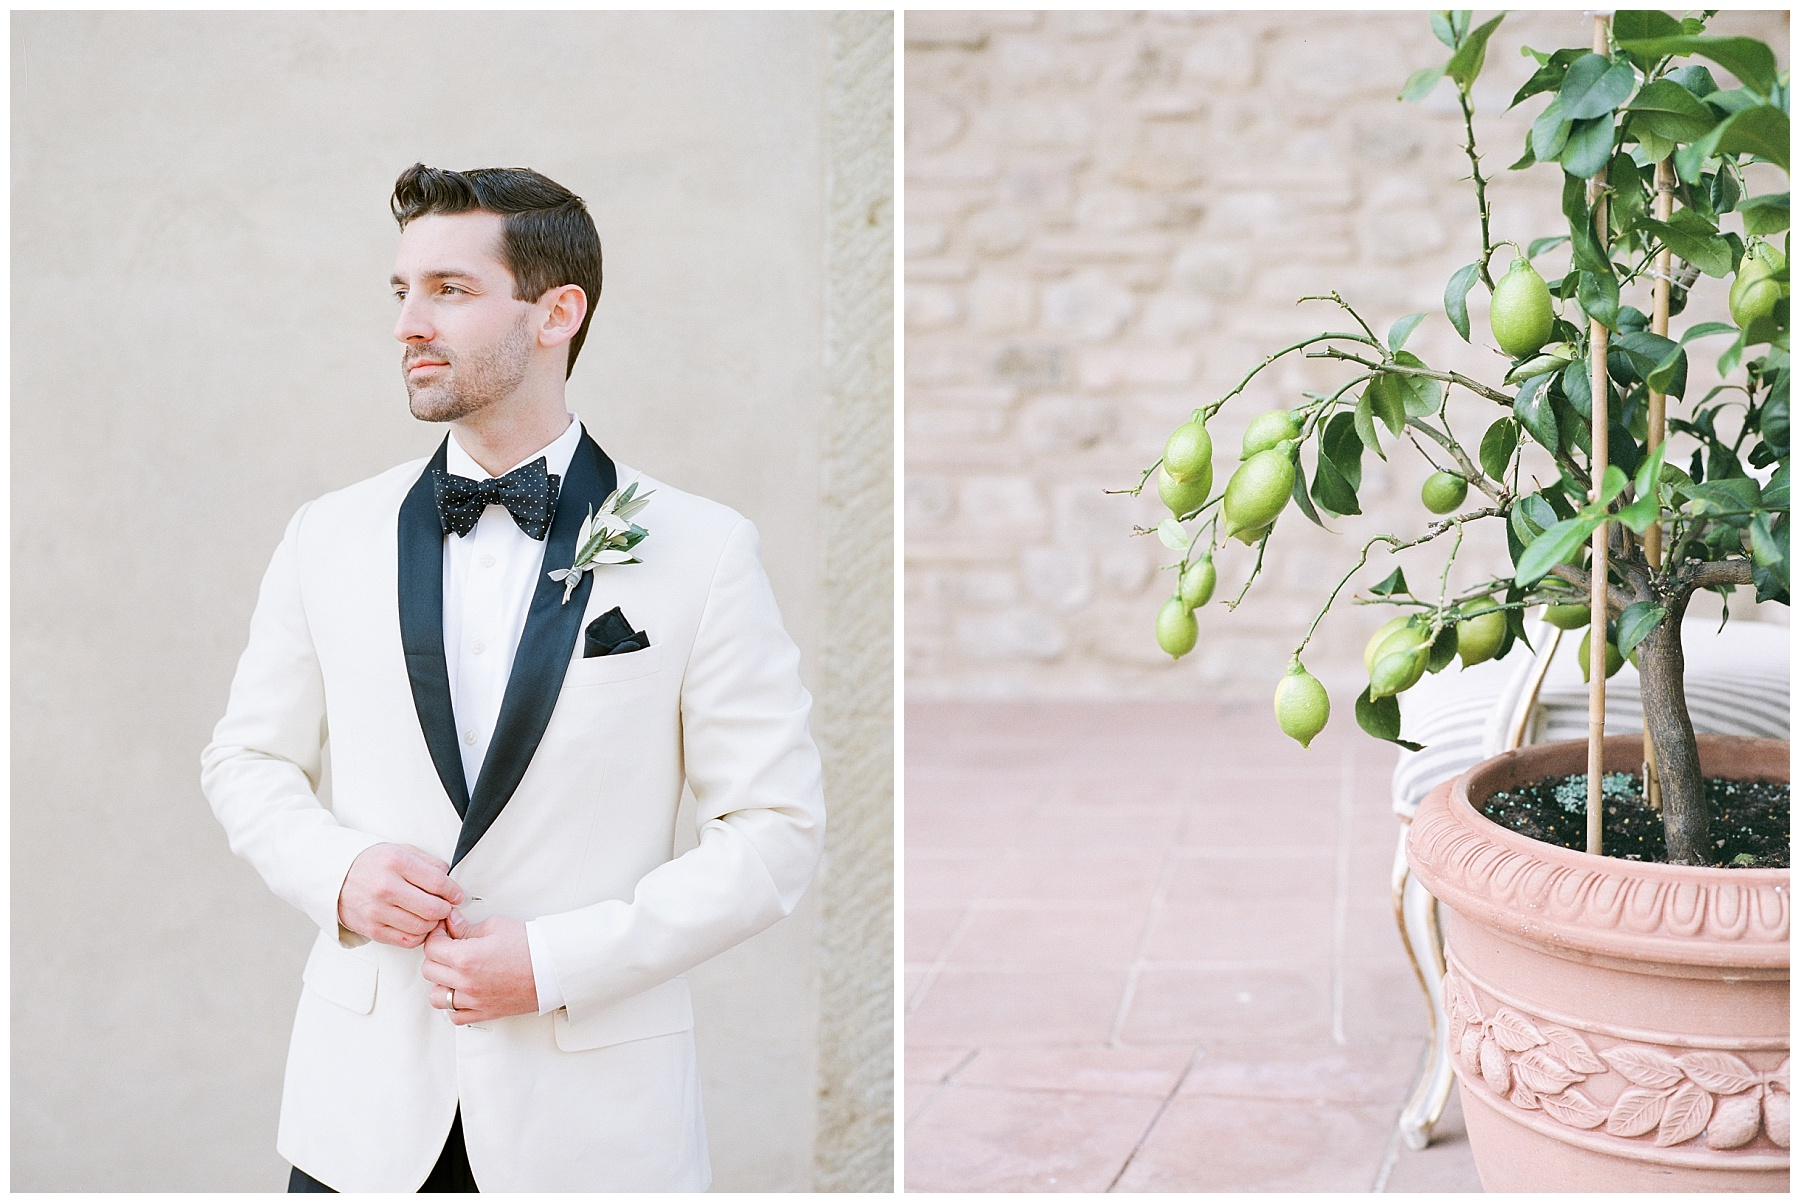 All White Destination Wedding in the Hills of Tuscany Italy at Estate Borgo Petrognano by Kelsi Kliethermes Photography_0034.jpg